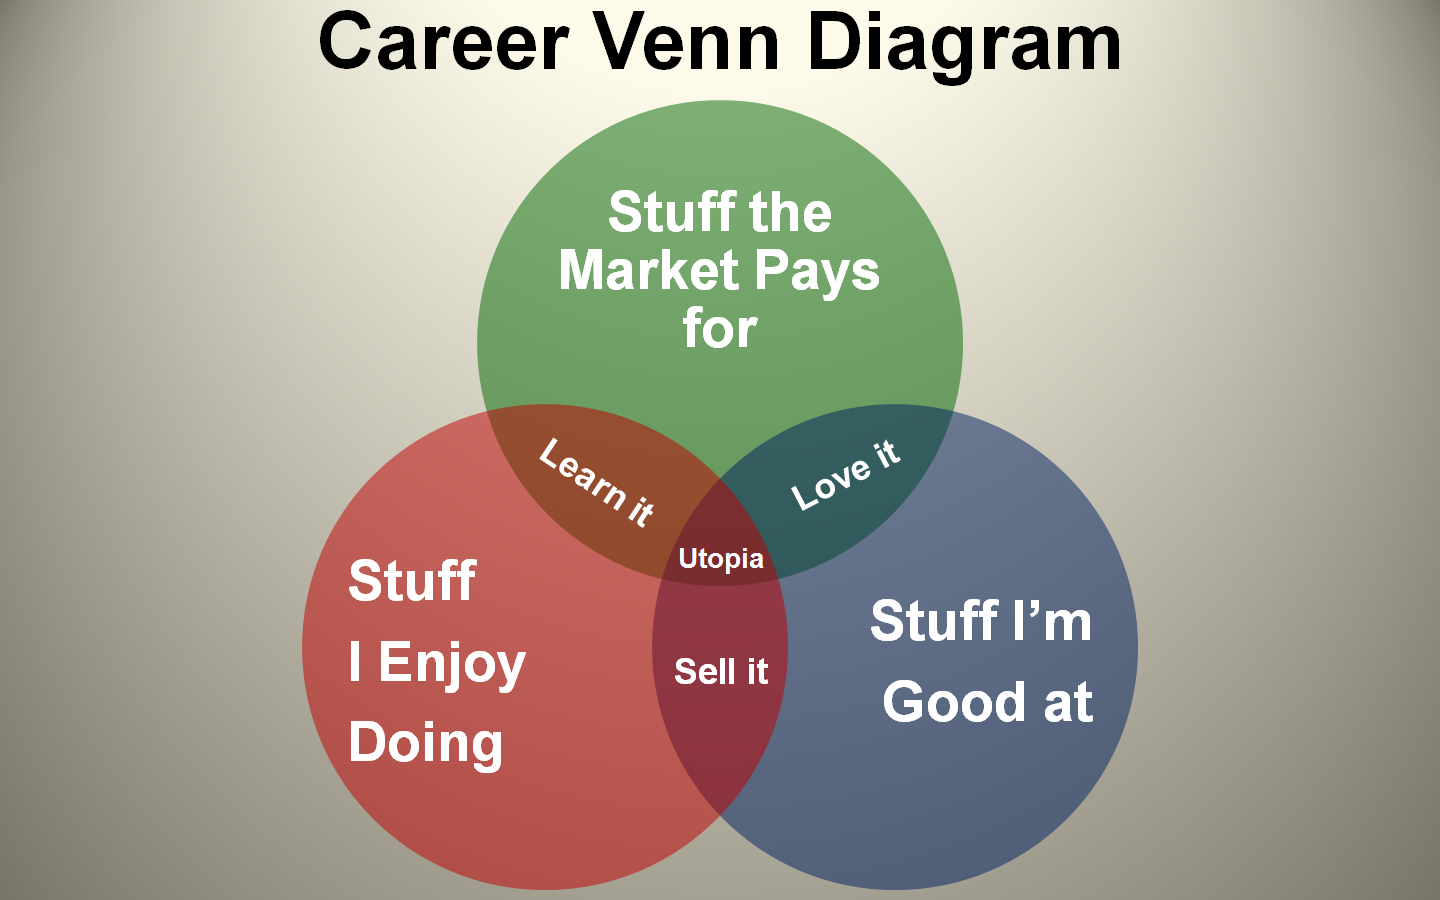 Career venn diagram macoy mejias blog was moved to i ccuart Gallery